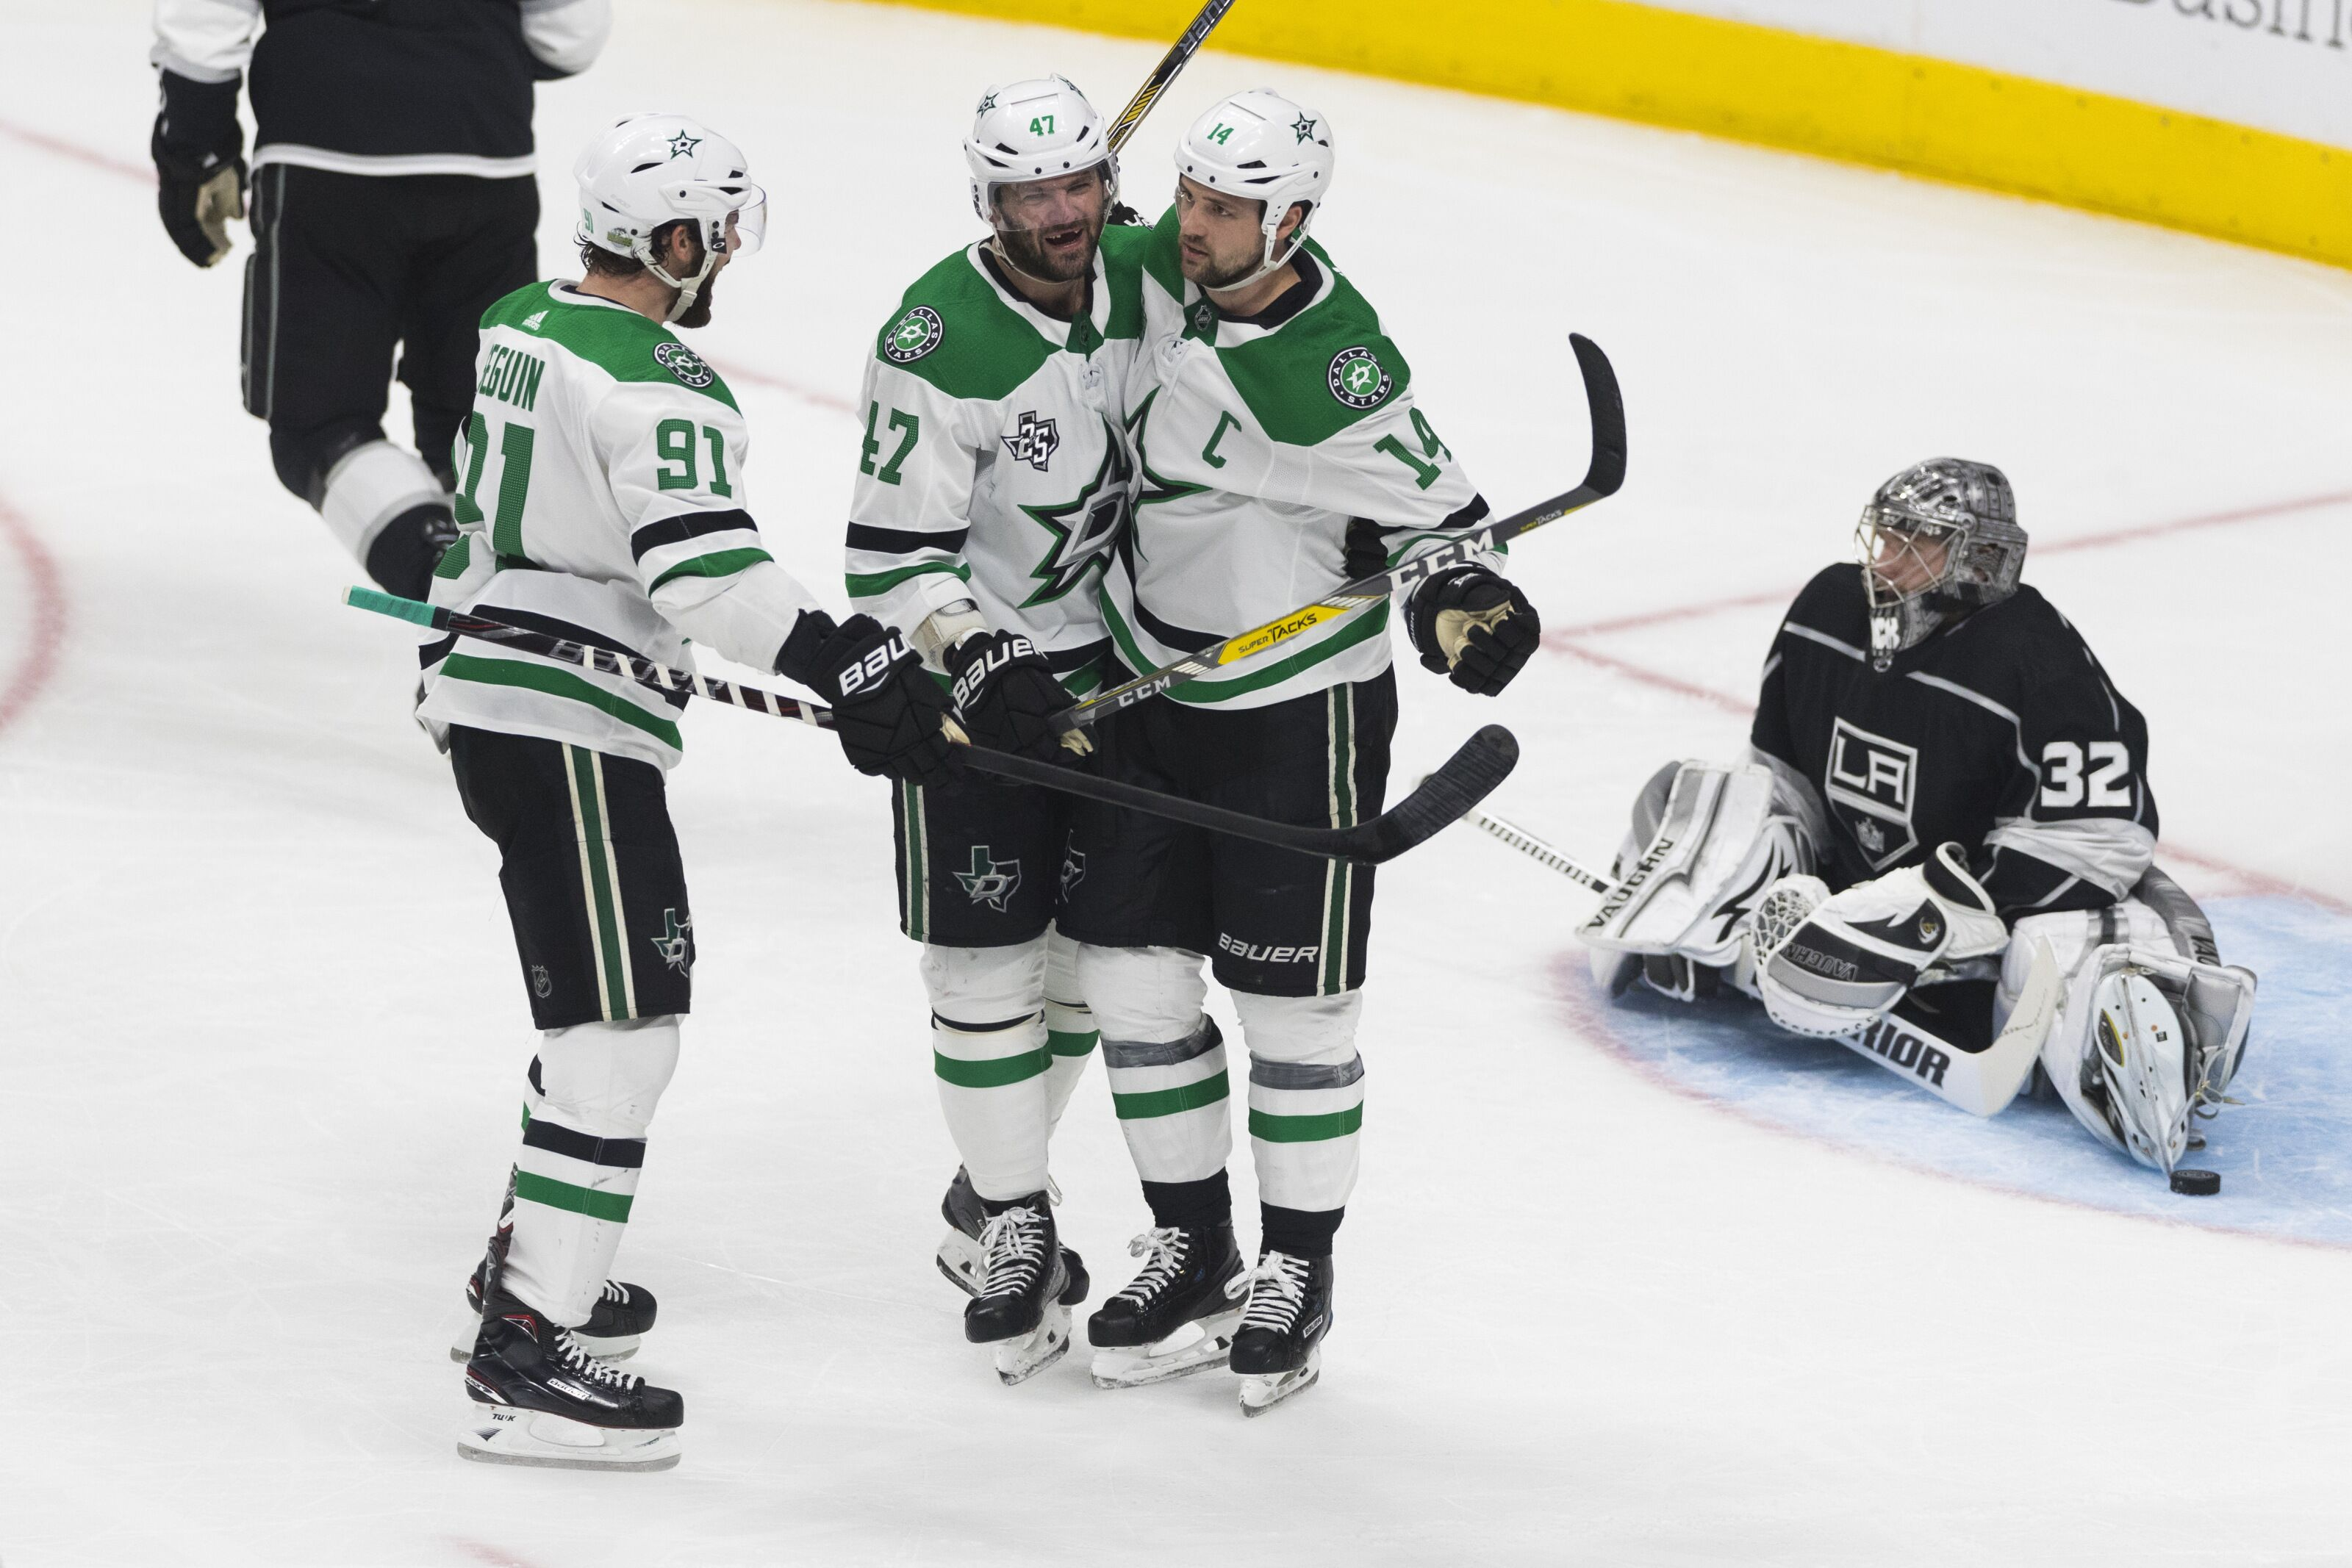 943193302-nhl-apr-07-stars-at-kings.jpg